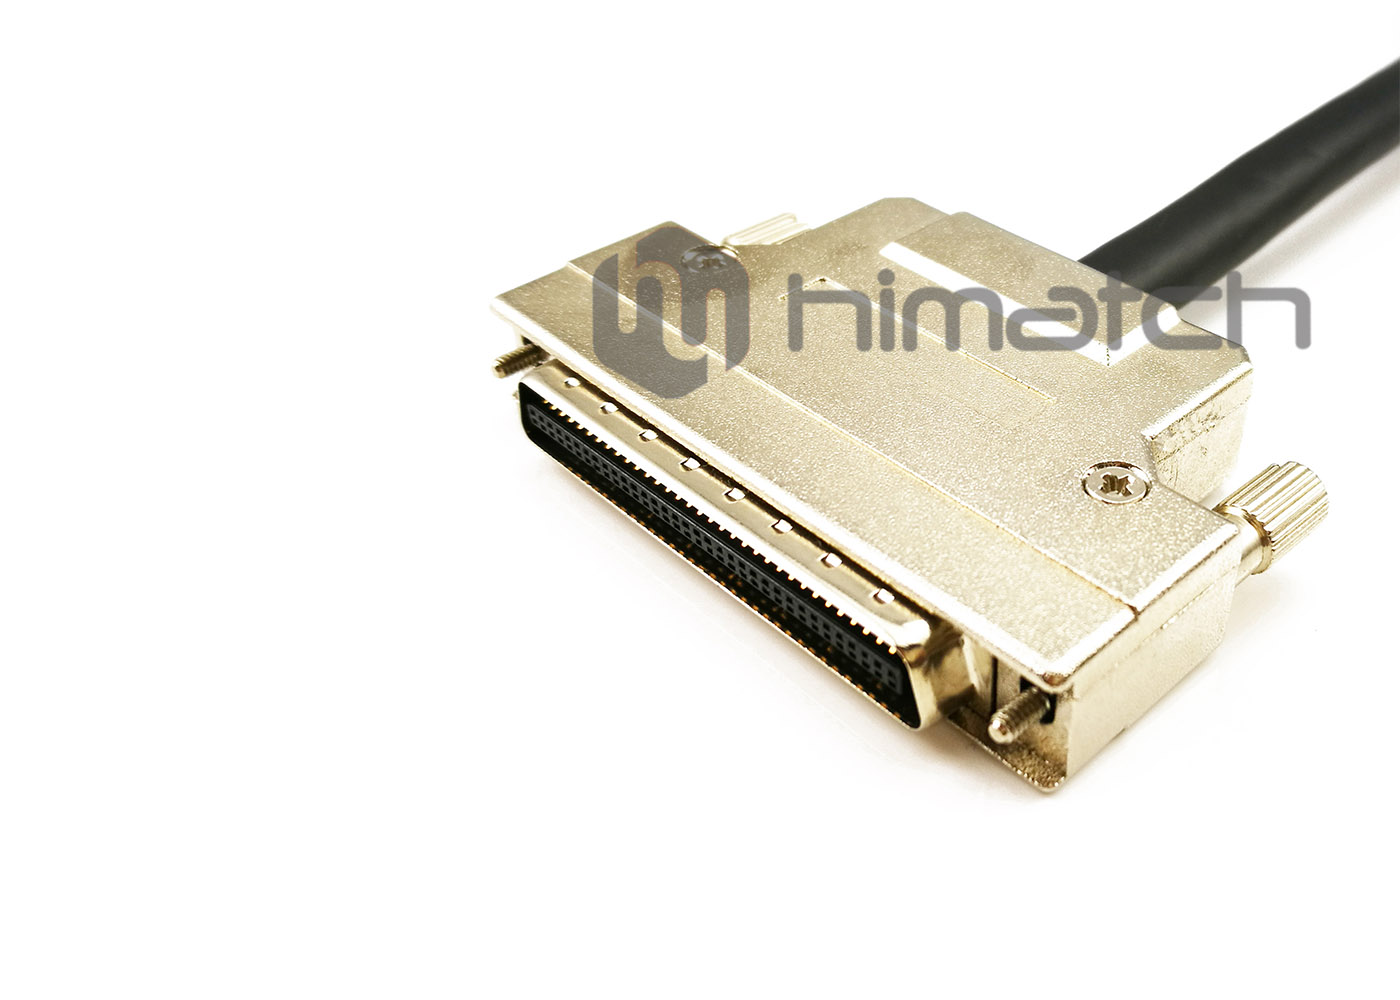 MDR 68pin Shielded Cable with Metal Shell and Thumbscrew